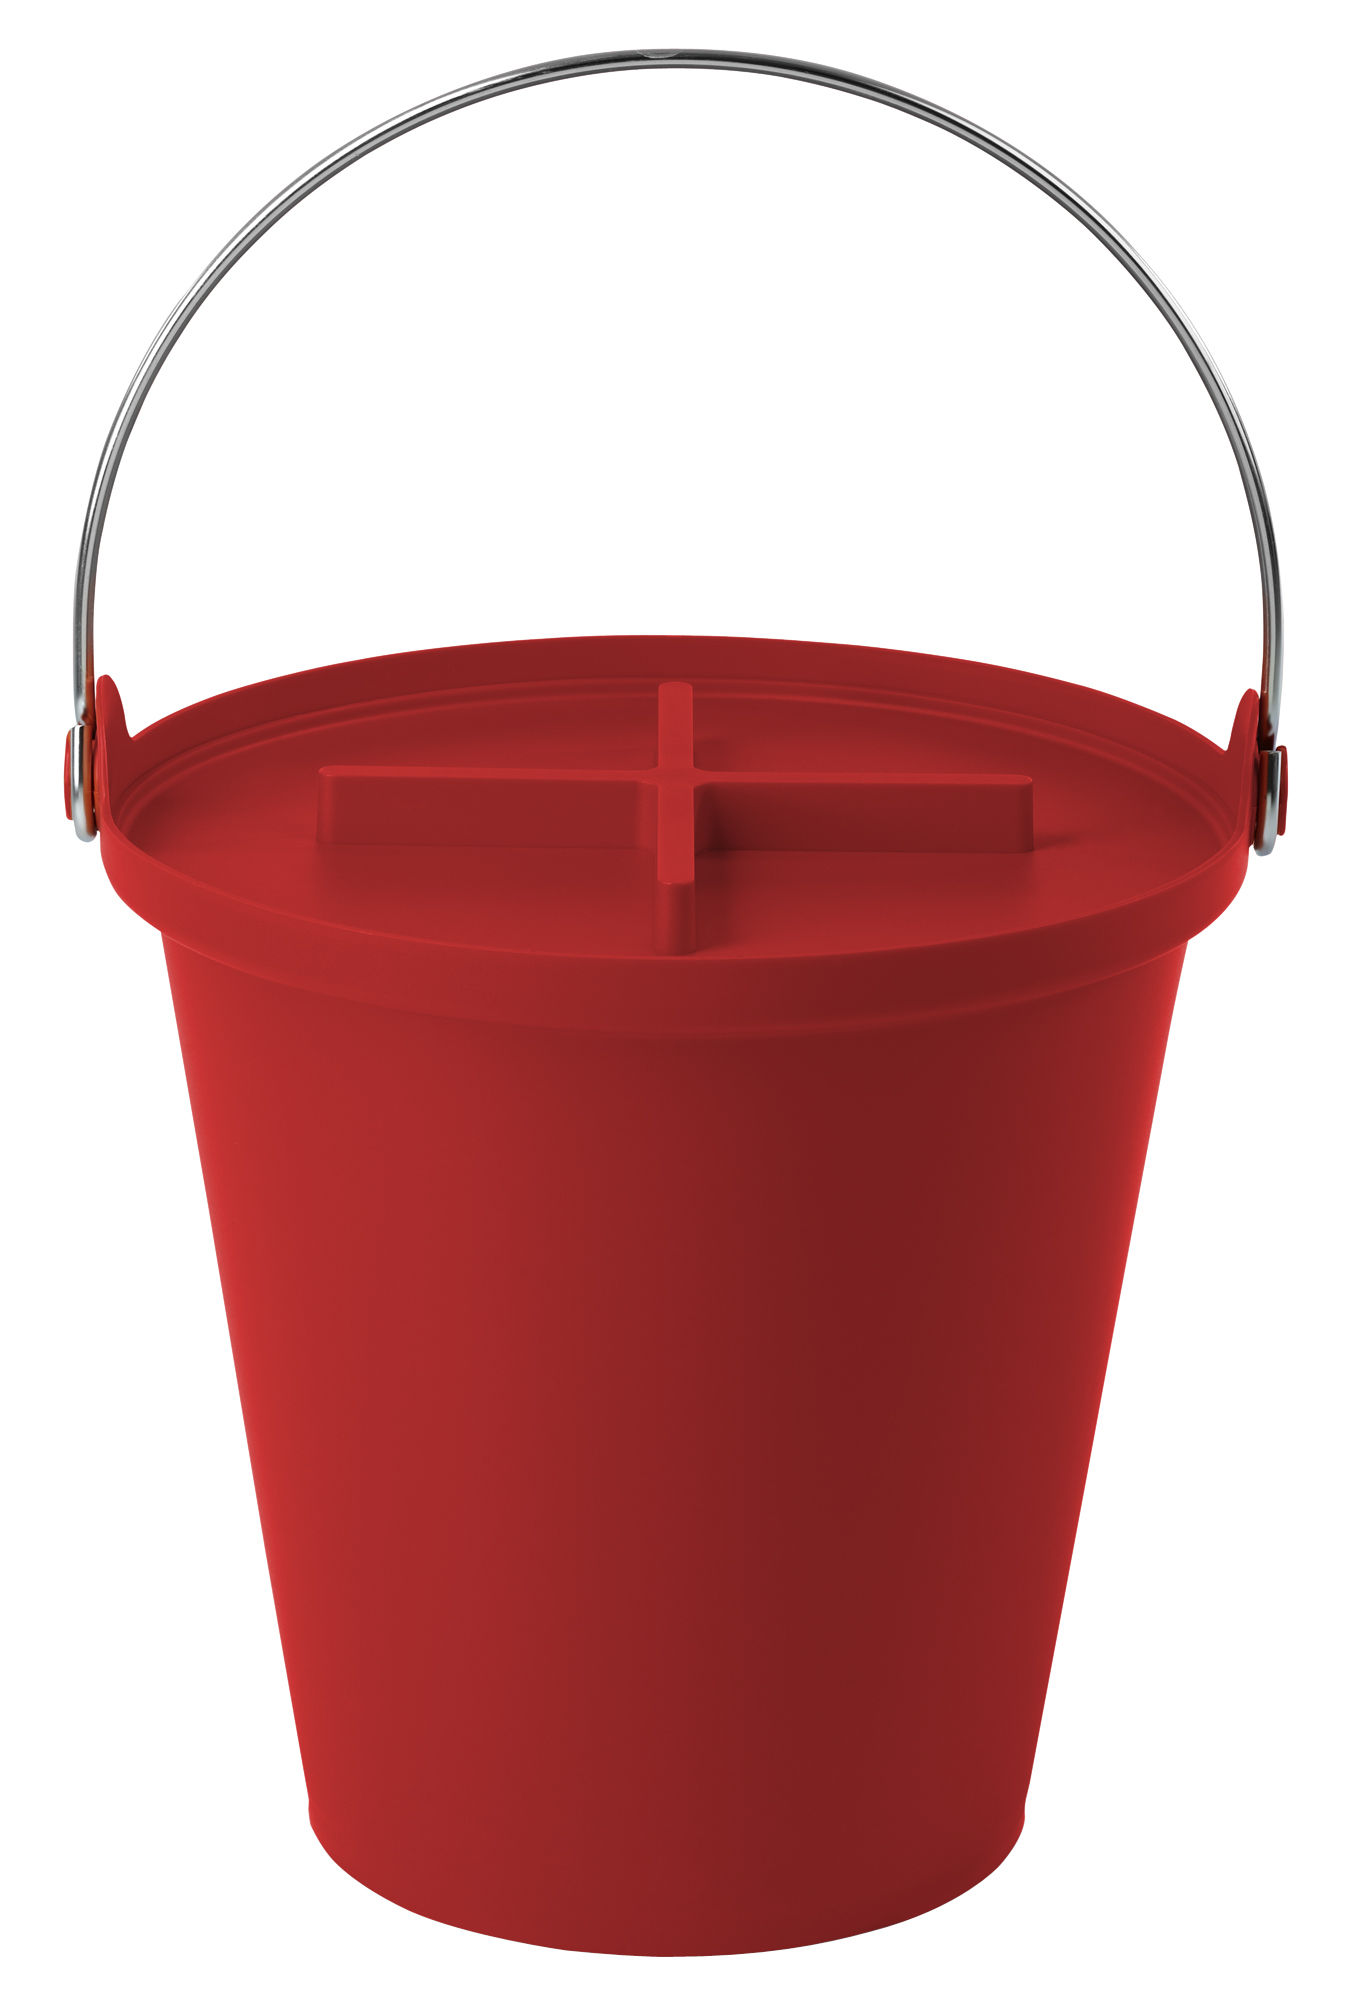 Decoration - For bathroom - H2O Bin by Authentics - Red - Metal, Polypropylene